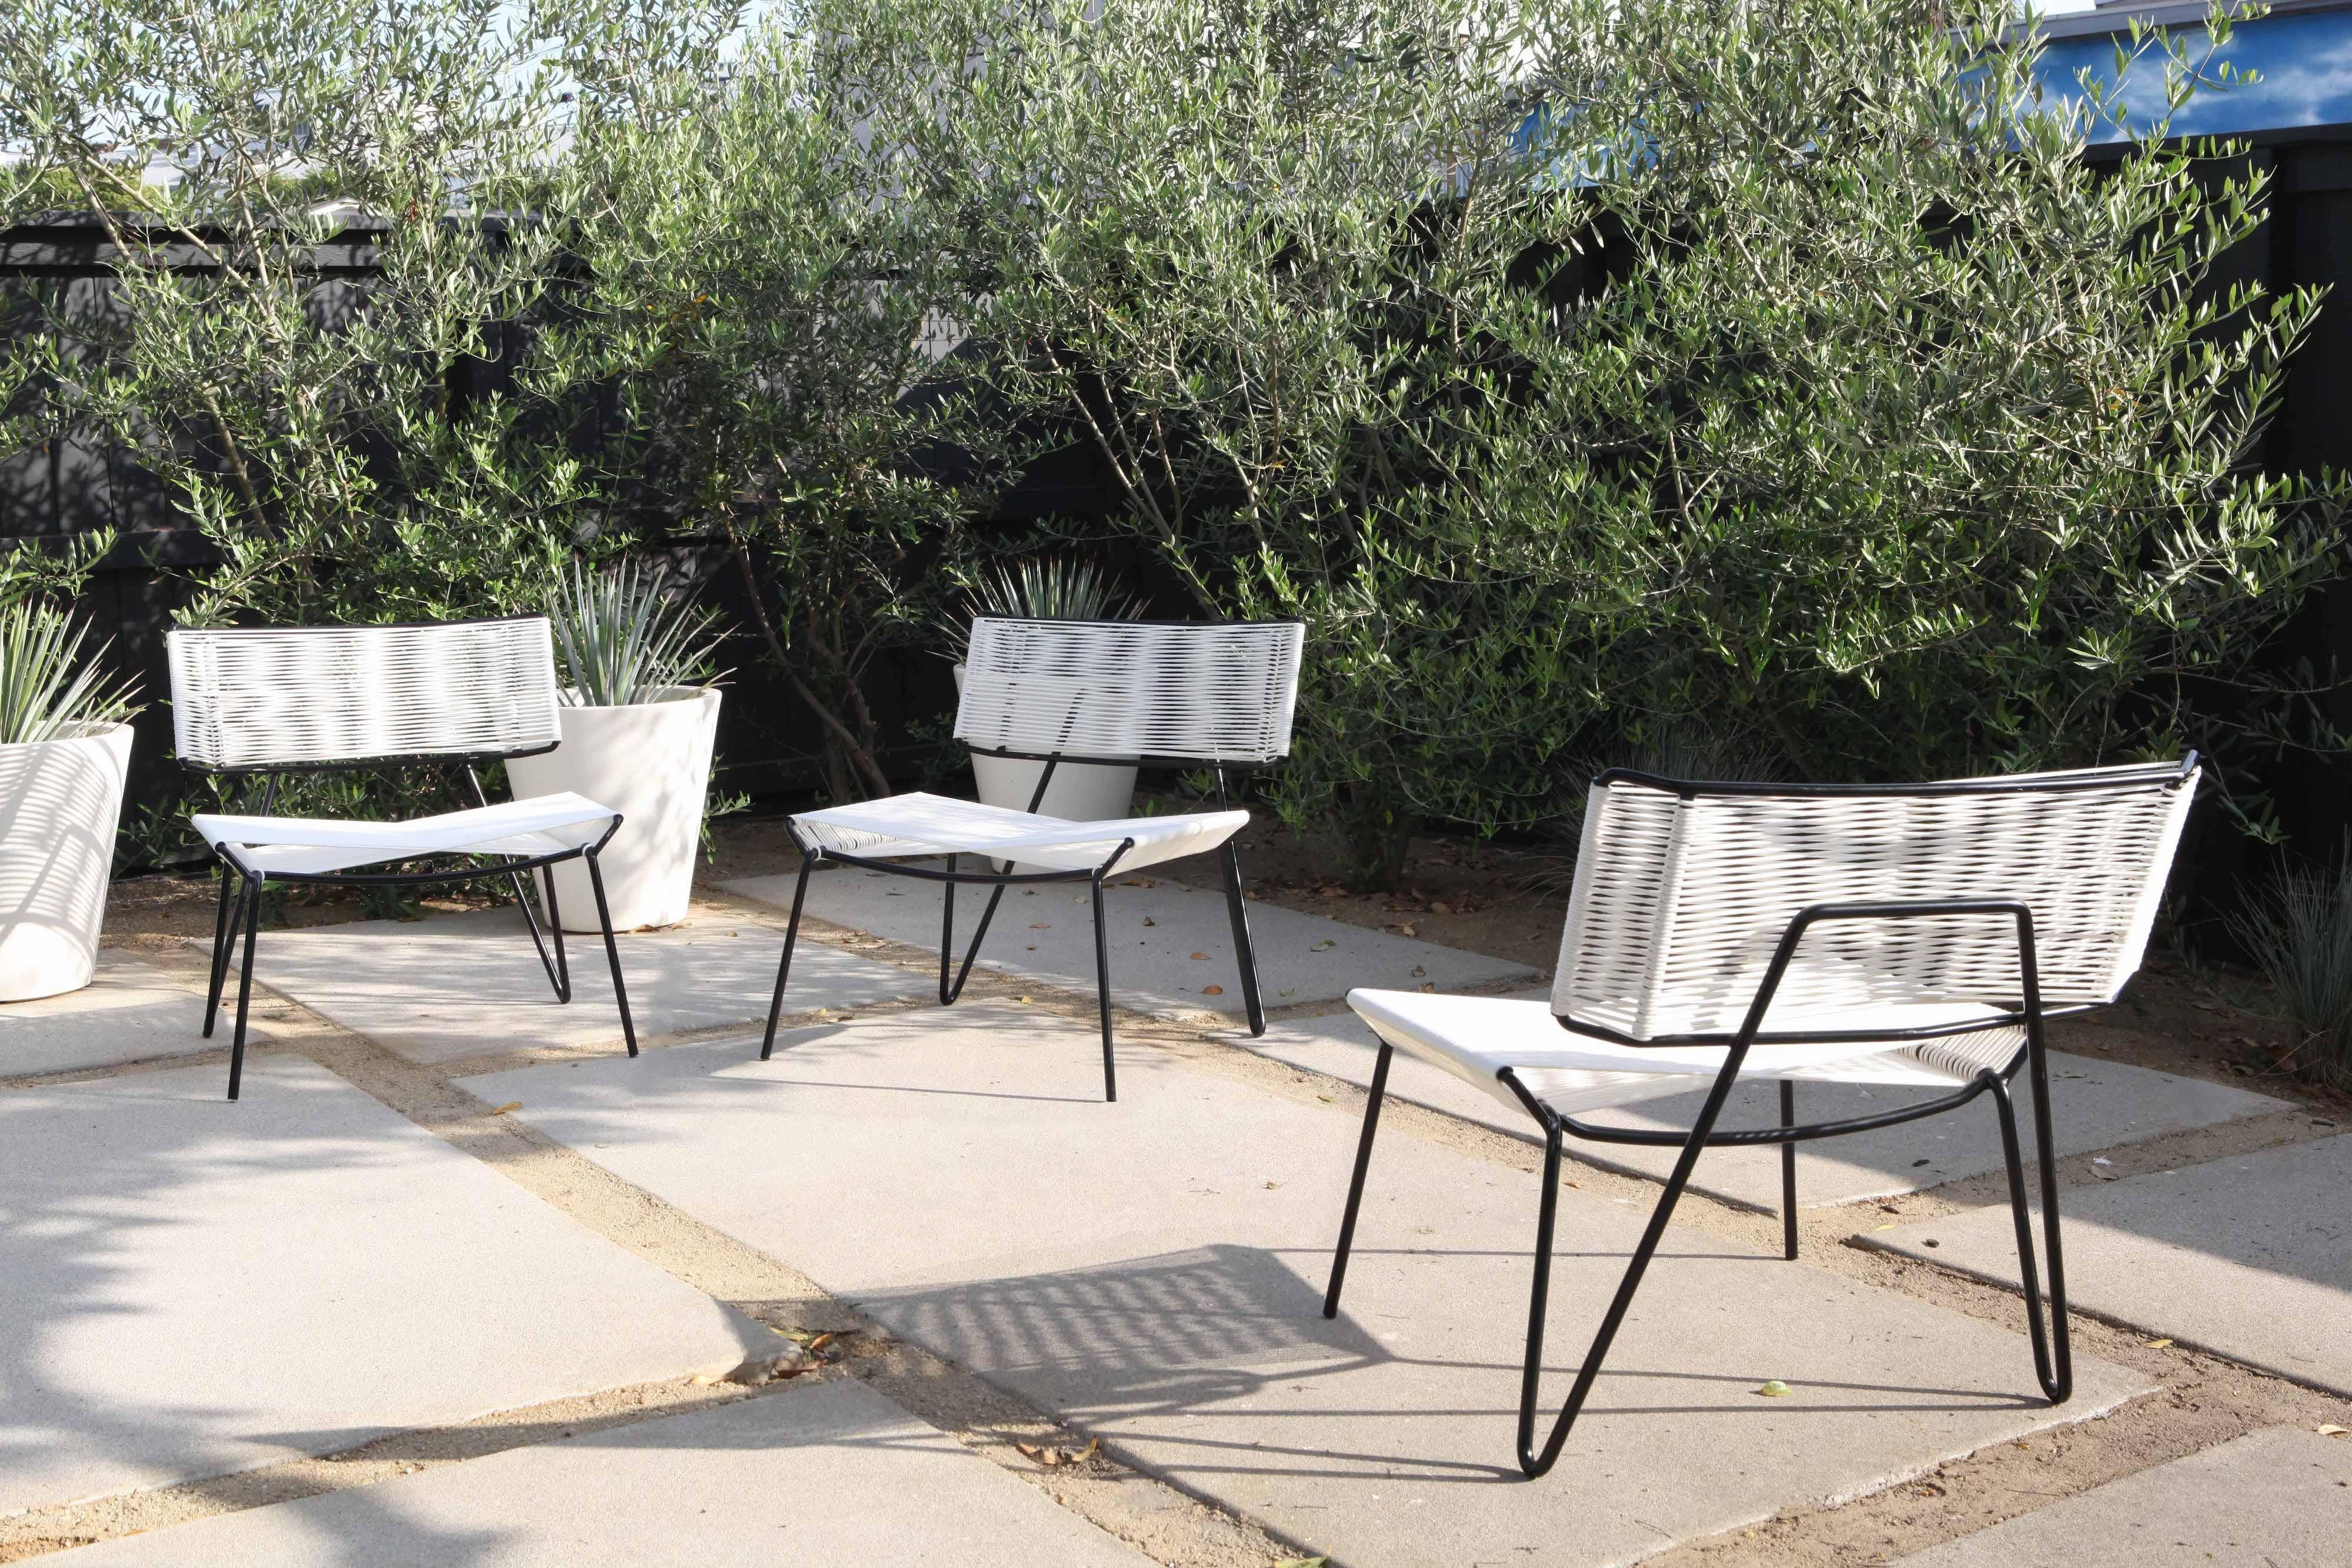 Mid Century Modern Handmade Midcentury Style Outdoor Lounge Chair, Black  With White PVC,